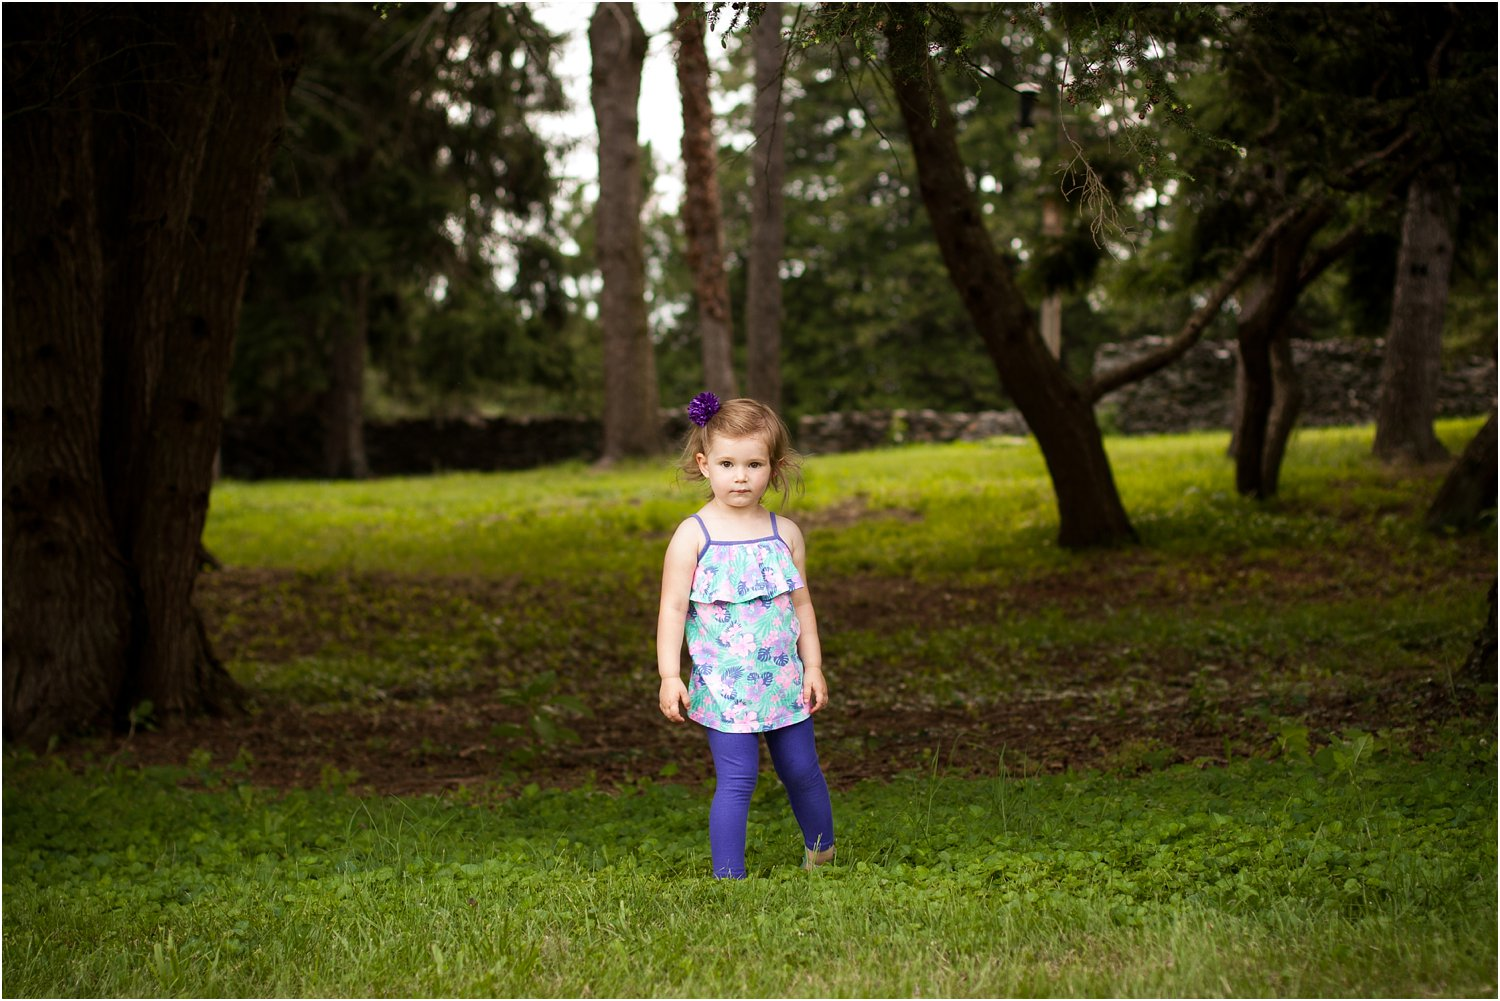 Blandy_Arboretum_Sibling_Mini_Sessions_Ouzts_0003.jpg